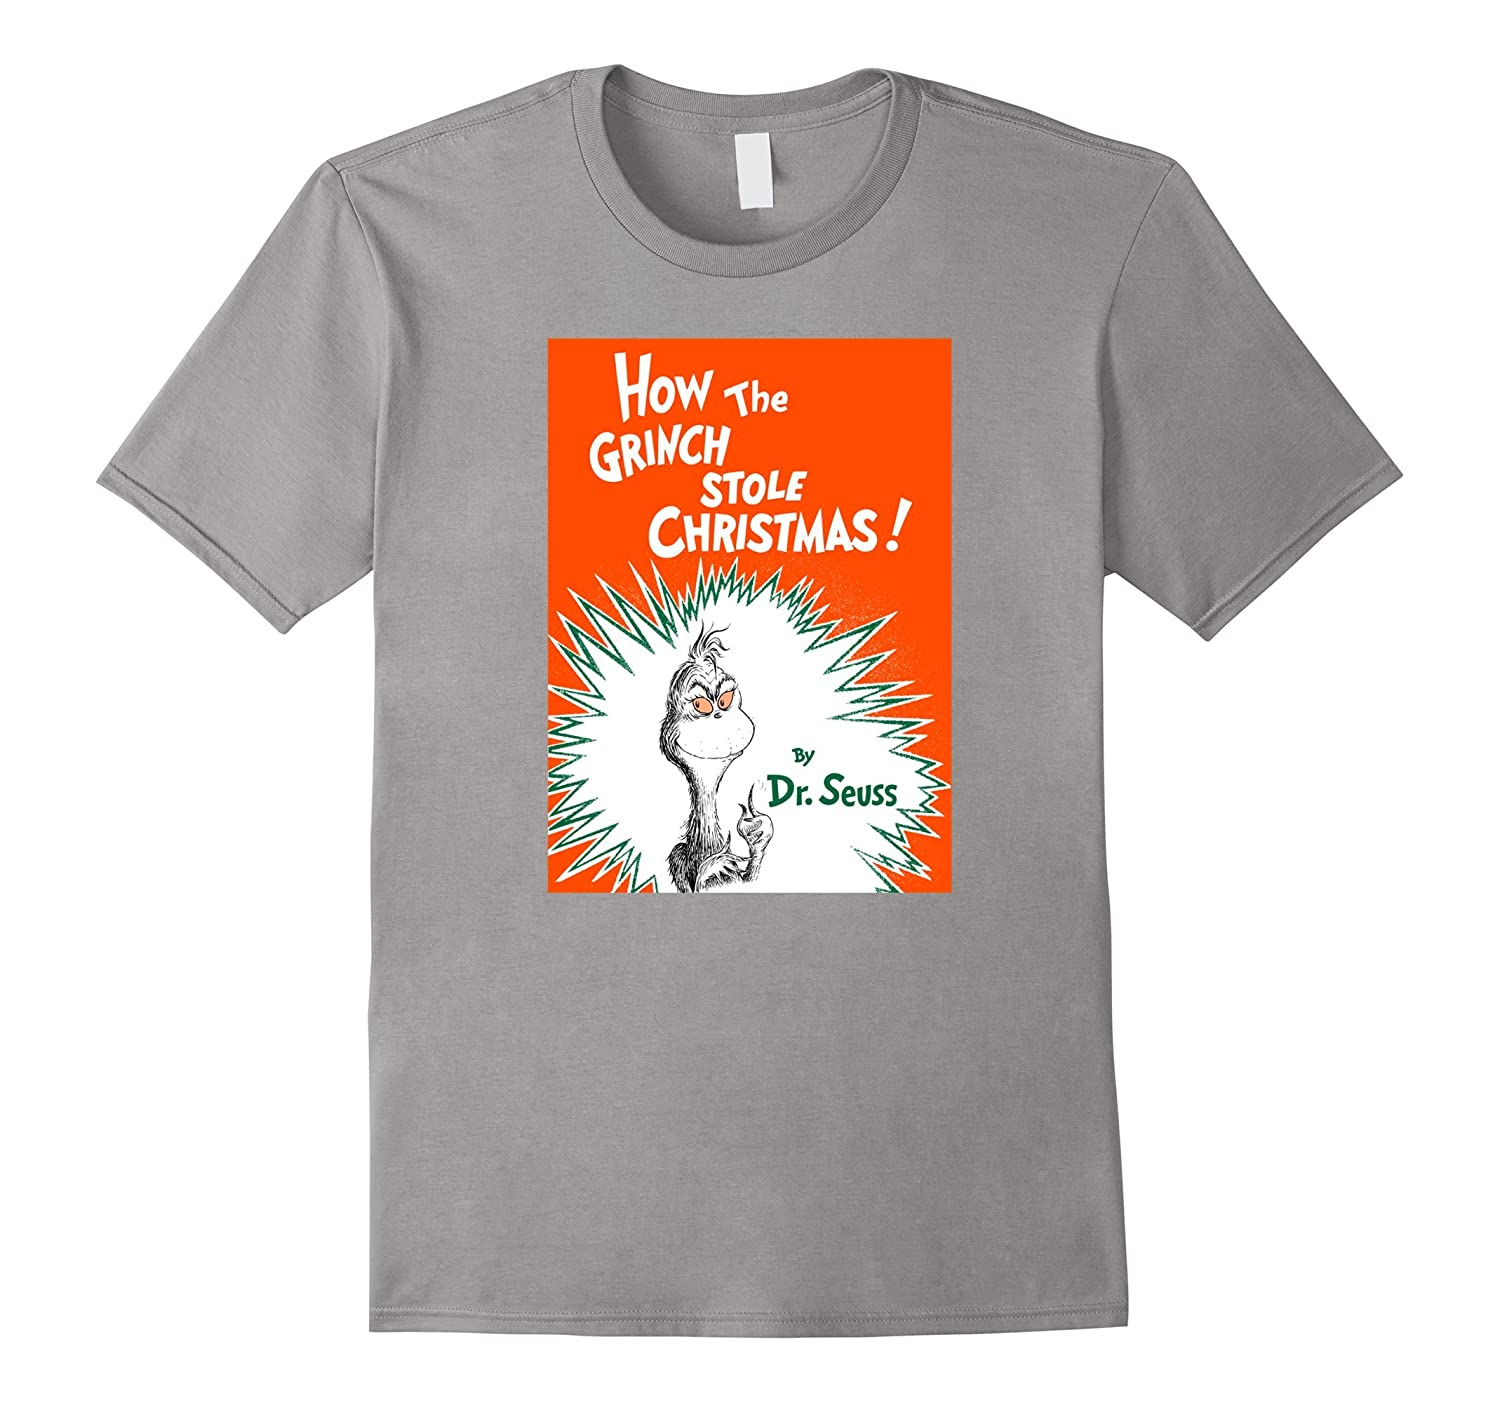 How The Grinch Stole Christmas Book Cover.Dr Seuss How The Grinch Stole Christmas Book Cover T Shirt Rt